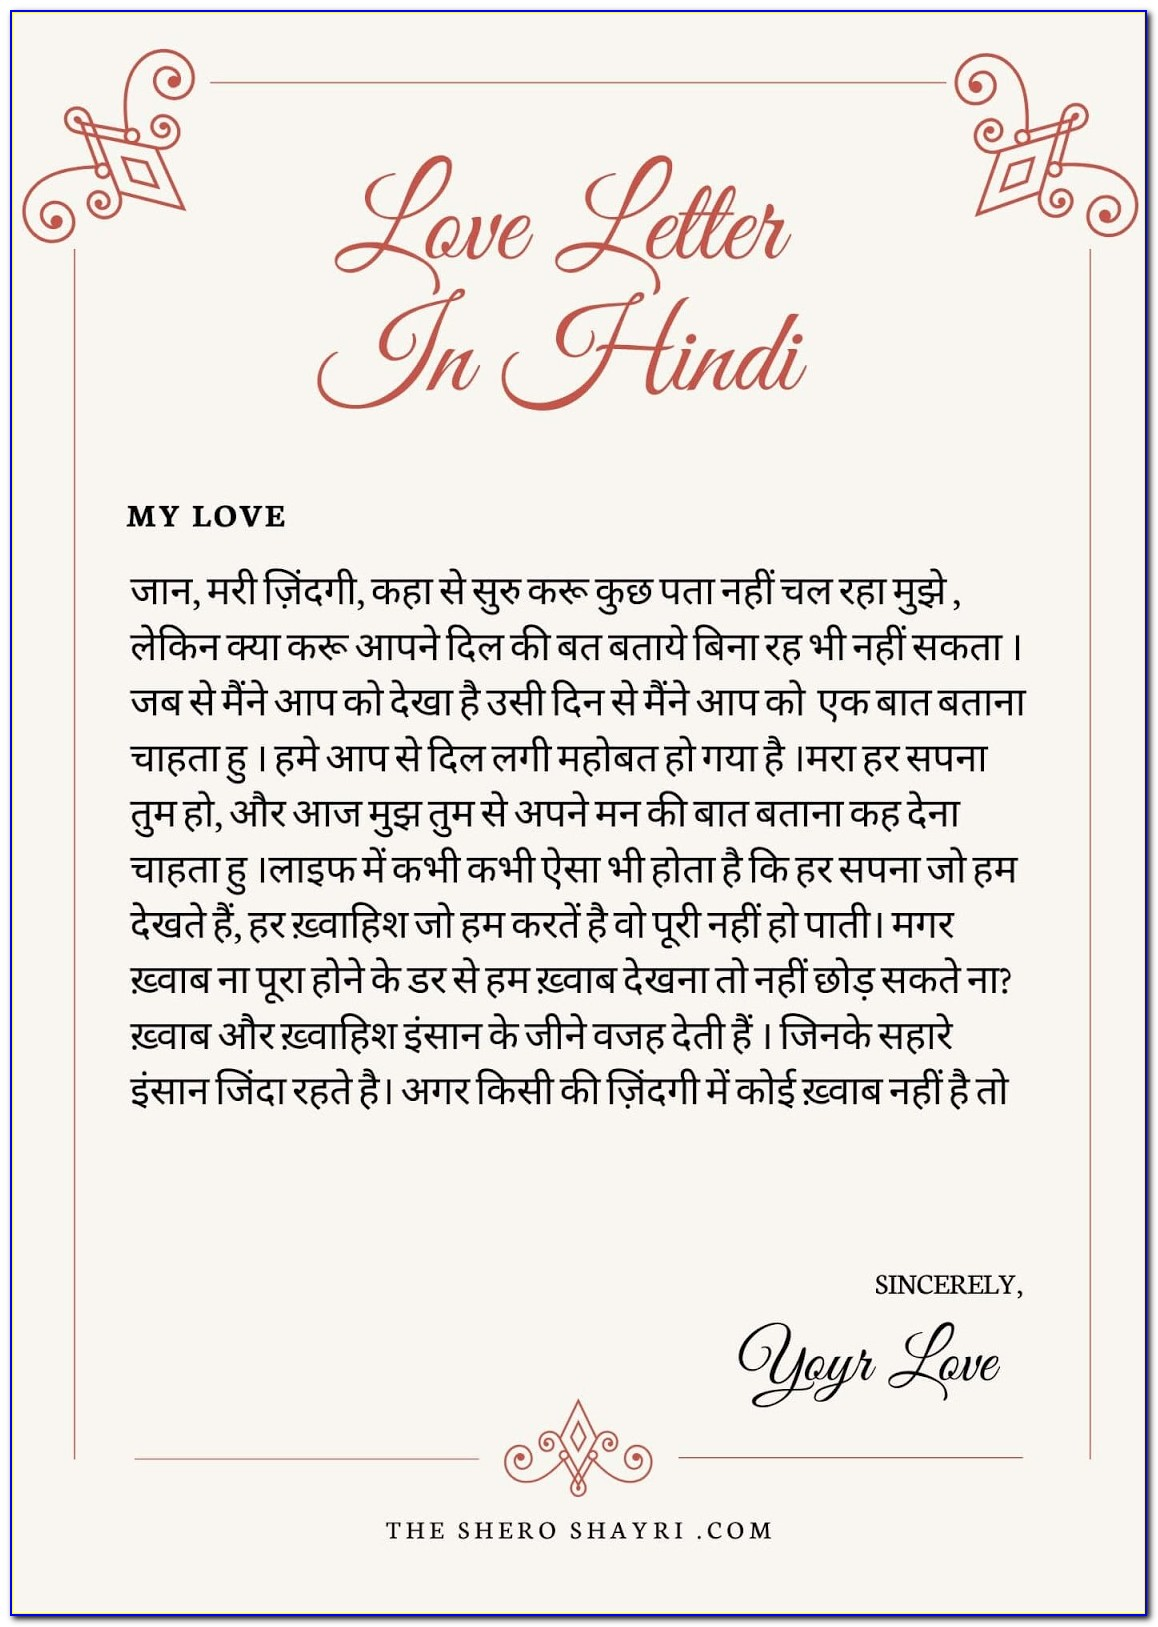 Cute Love Letters For Her In Hindi